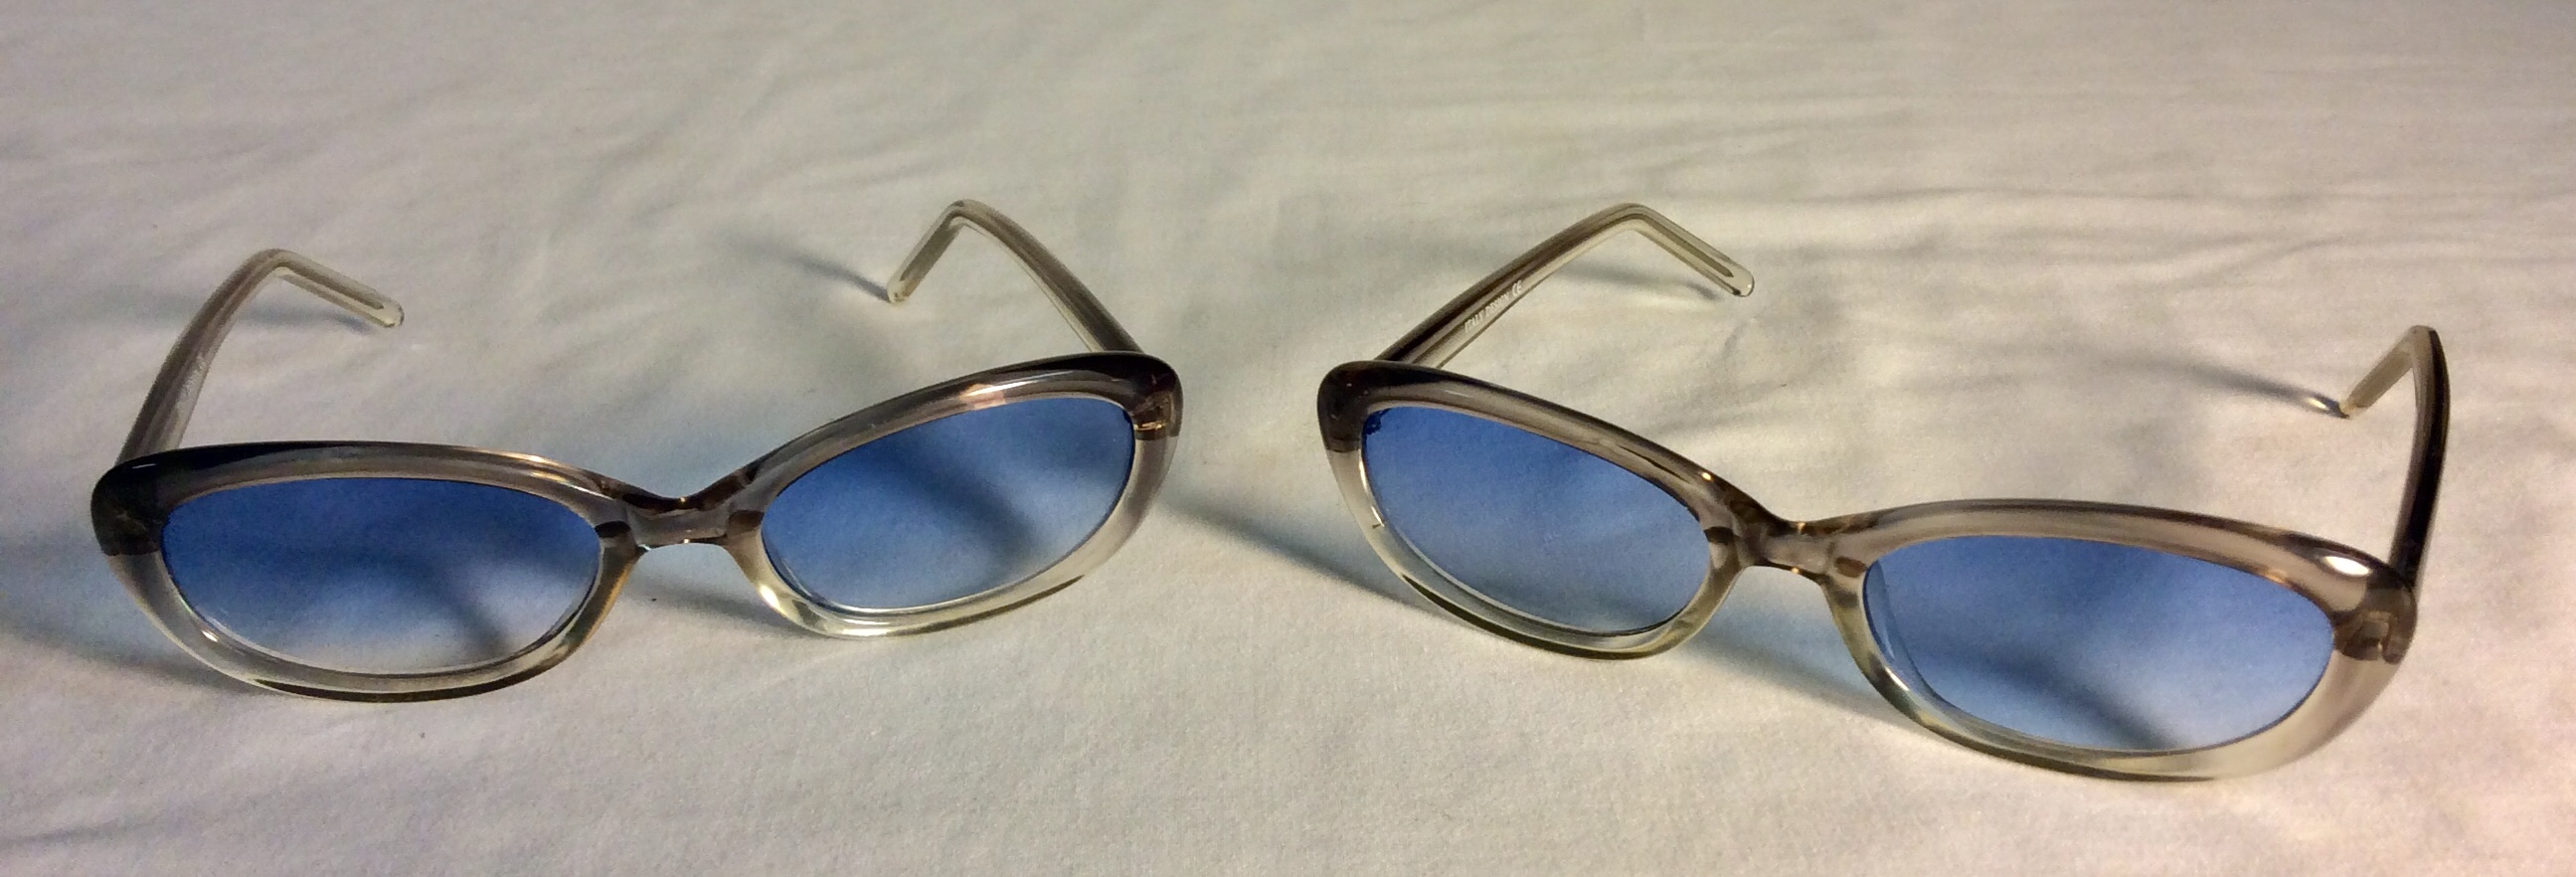 Gradient light blue lens sunglasses